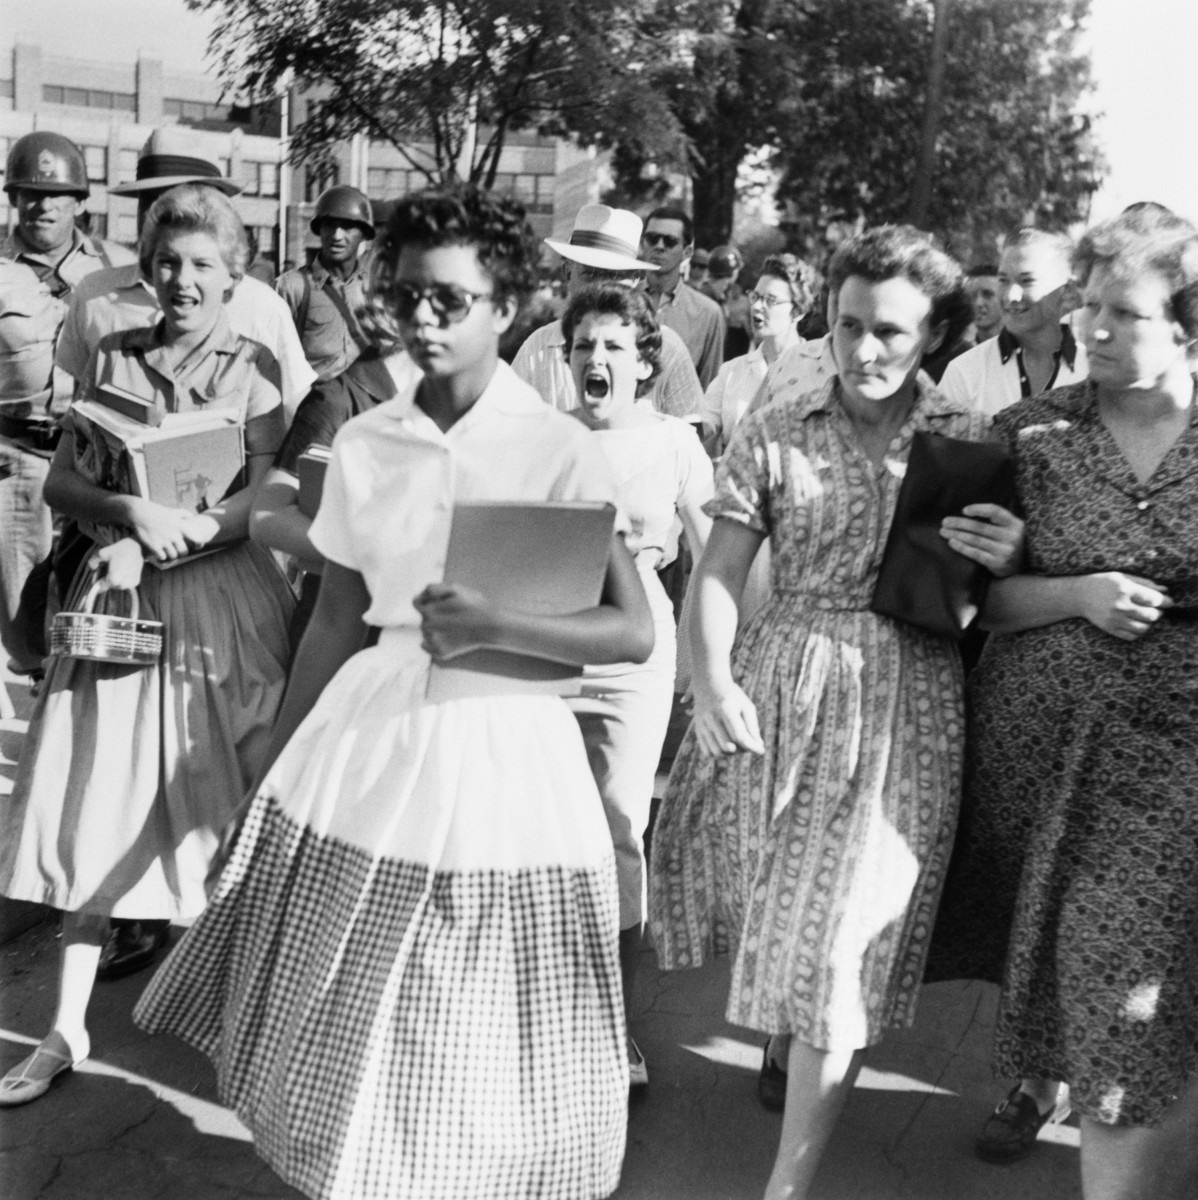 Elizabeth Eckford walks through an unwelcoming crowd on the first day of school.